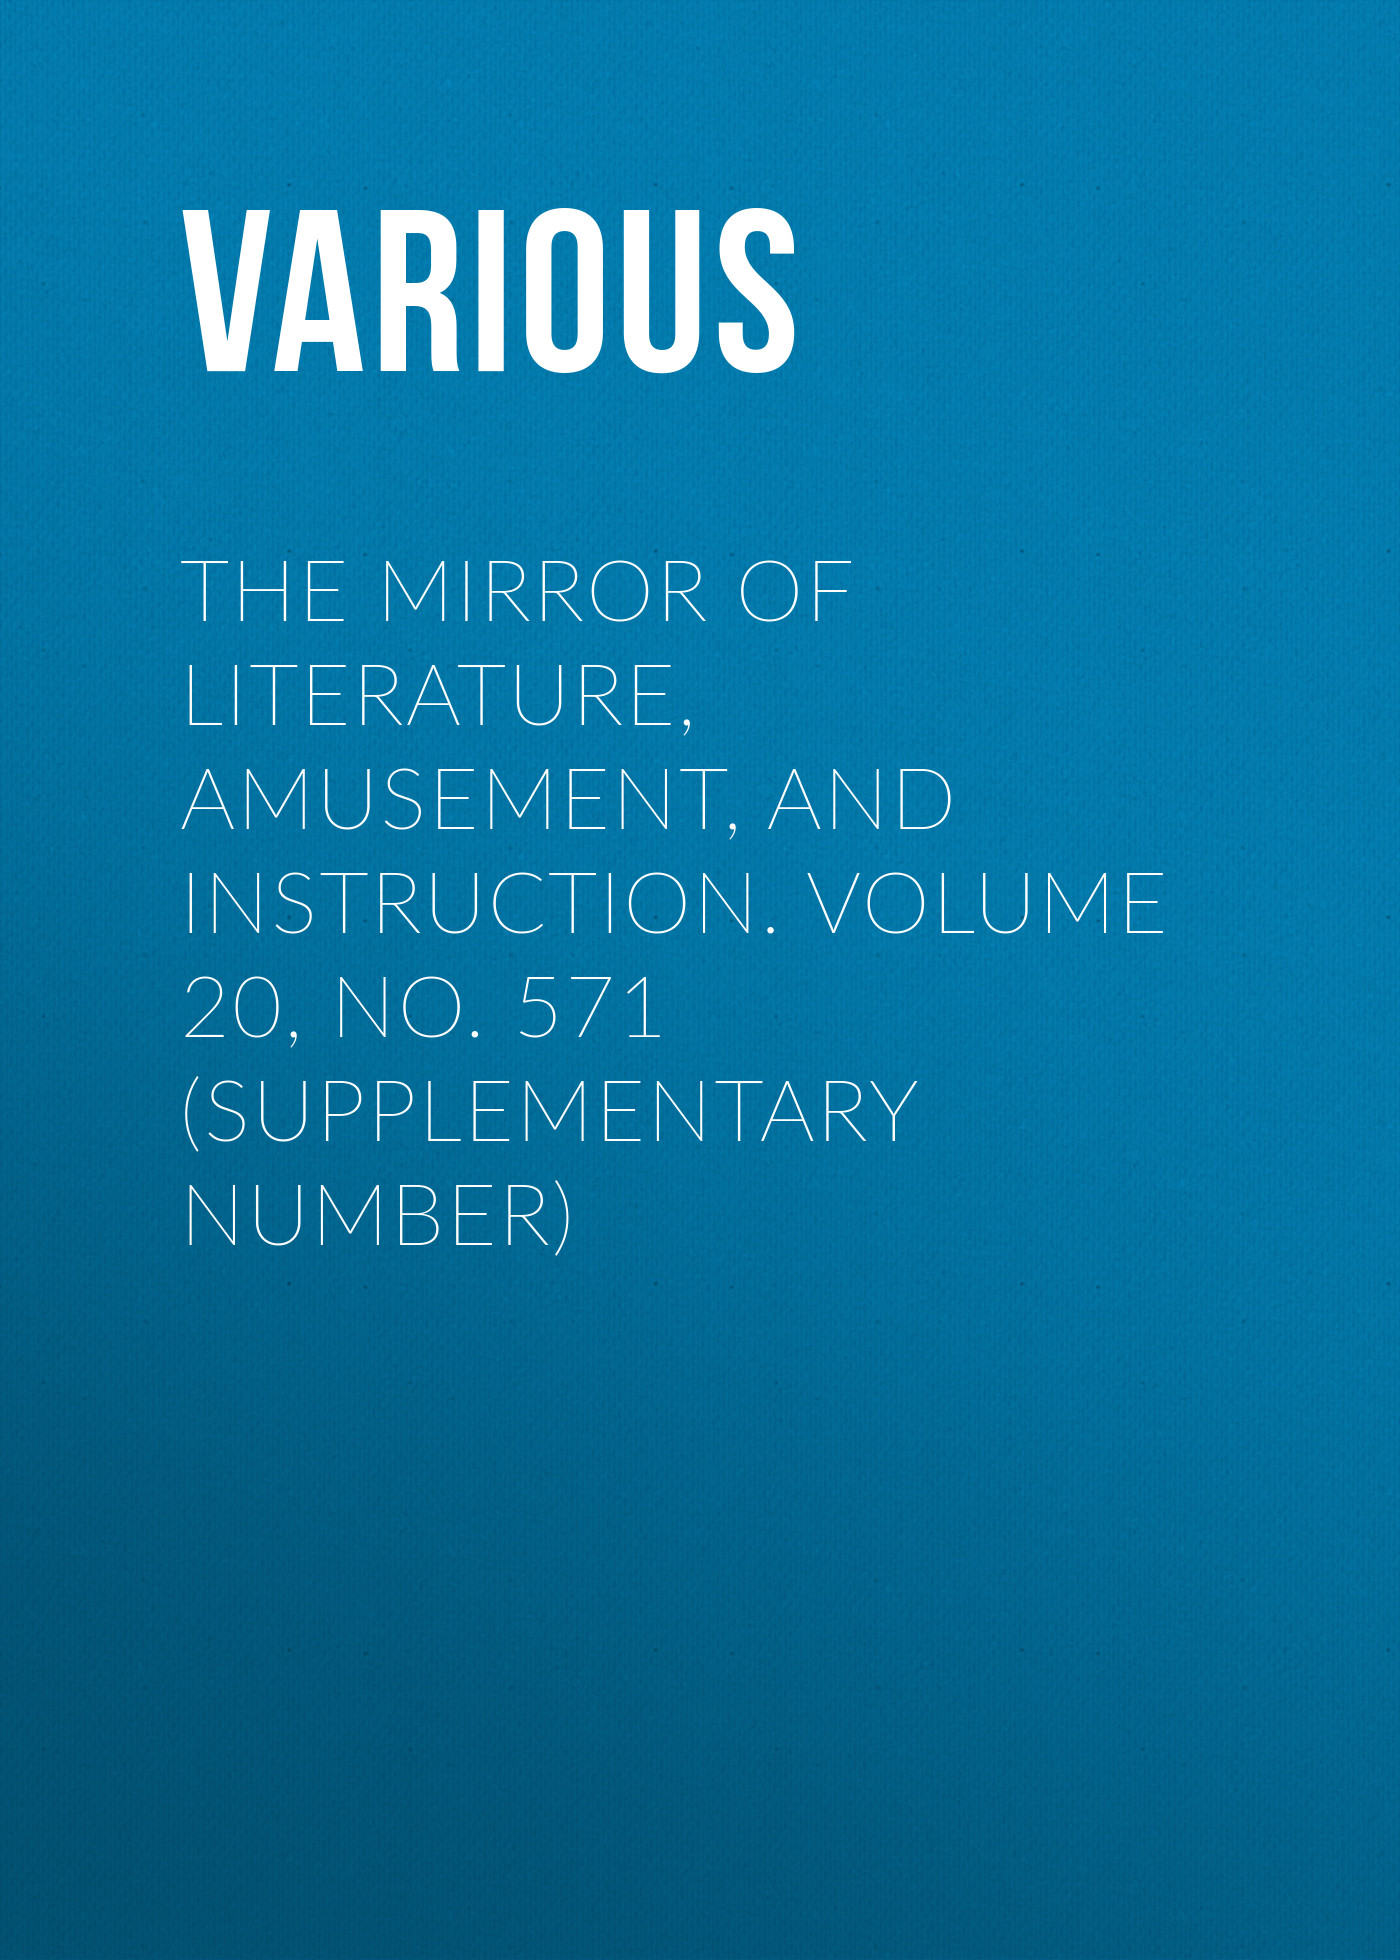 Various The Mirror of Literature, Amusement, and Instruction. Volume 20, No. 571 (Supplementary Number) various the mirror of literature amusement and instruction volume 12 no 340 supplementary number 1828